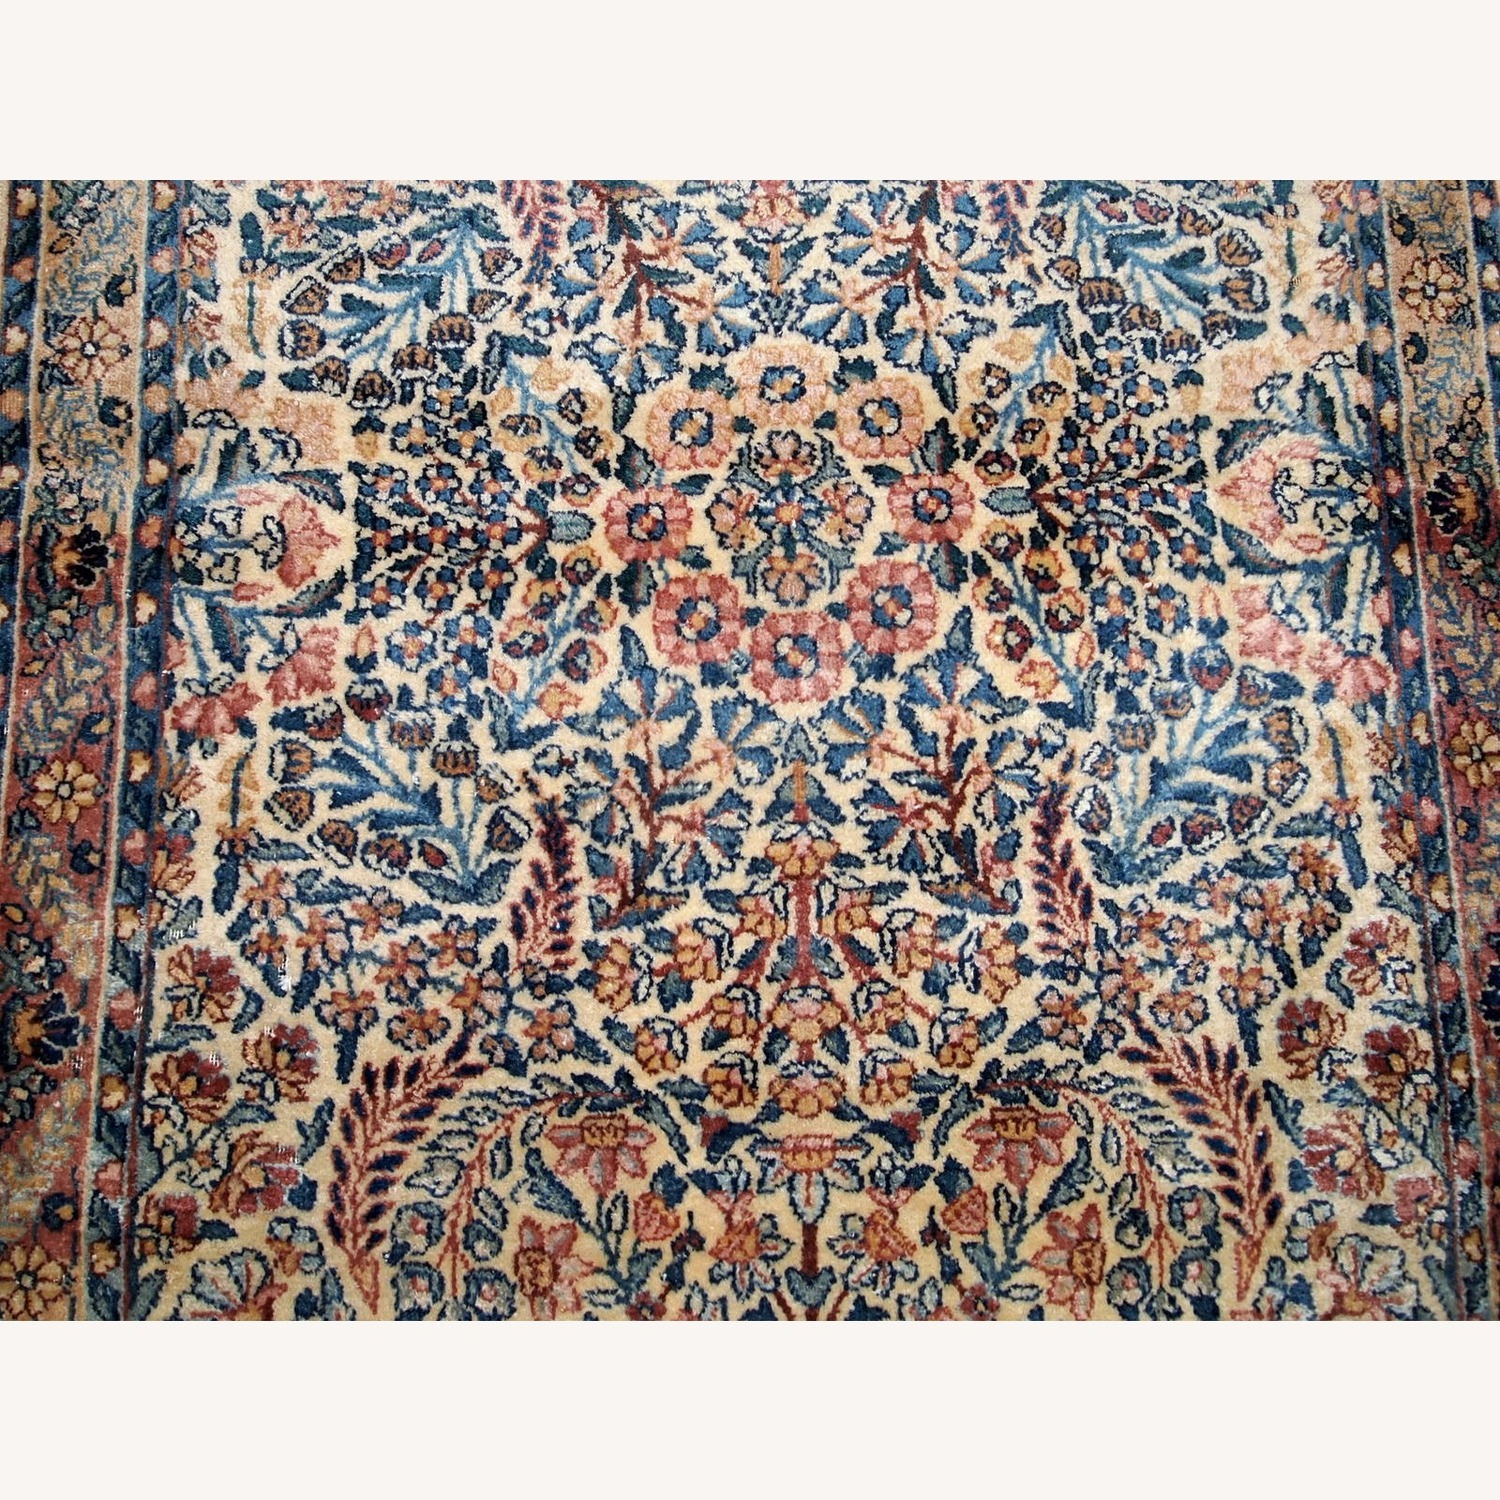 Handmade Antique Persian Kerman Rug - image-3